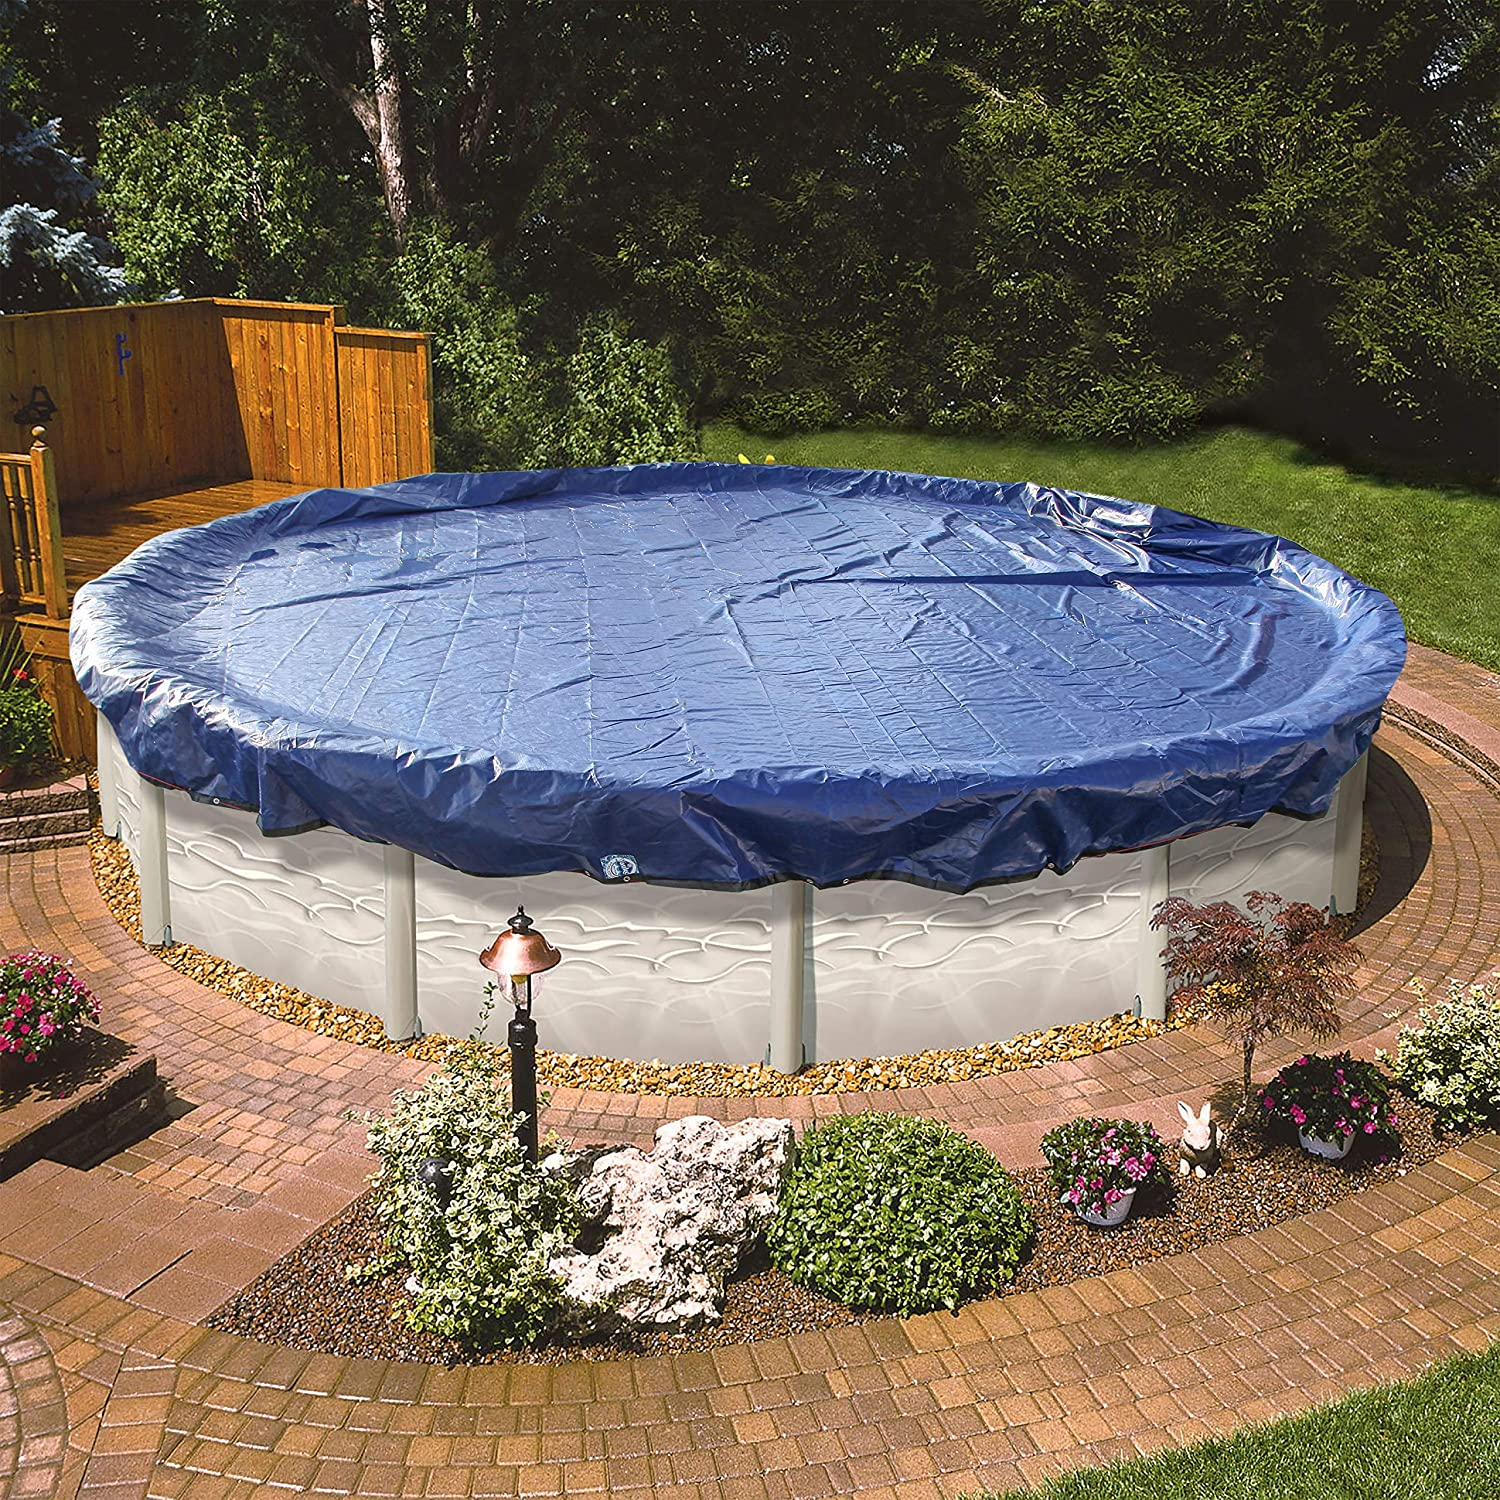 24 Foot Round Pool Cover for Above Ground Pools. The Strongest 24\' Winter  Pool Covers for Above Ground Pools to Winterize Your Swimming Pool. Extra  ...